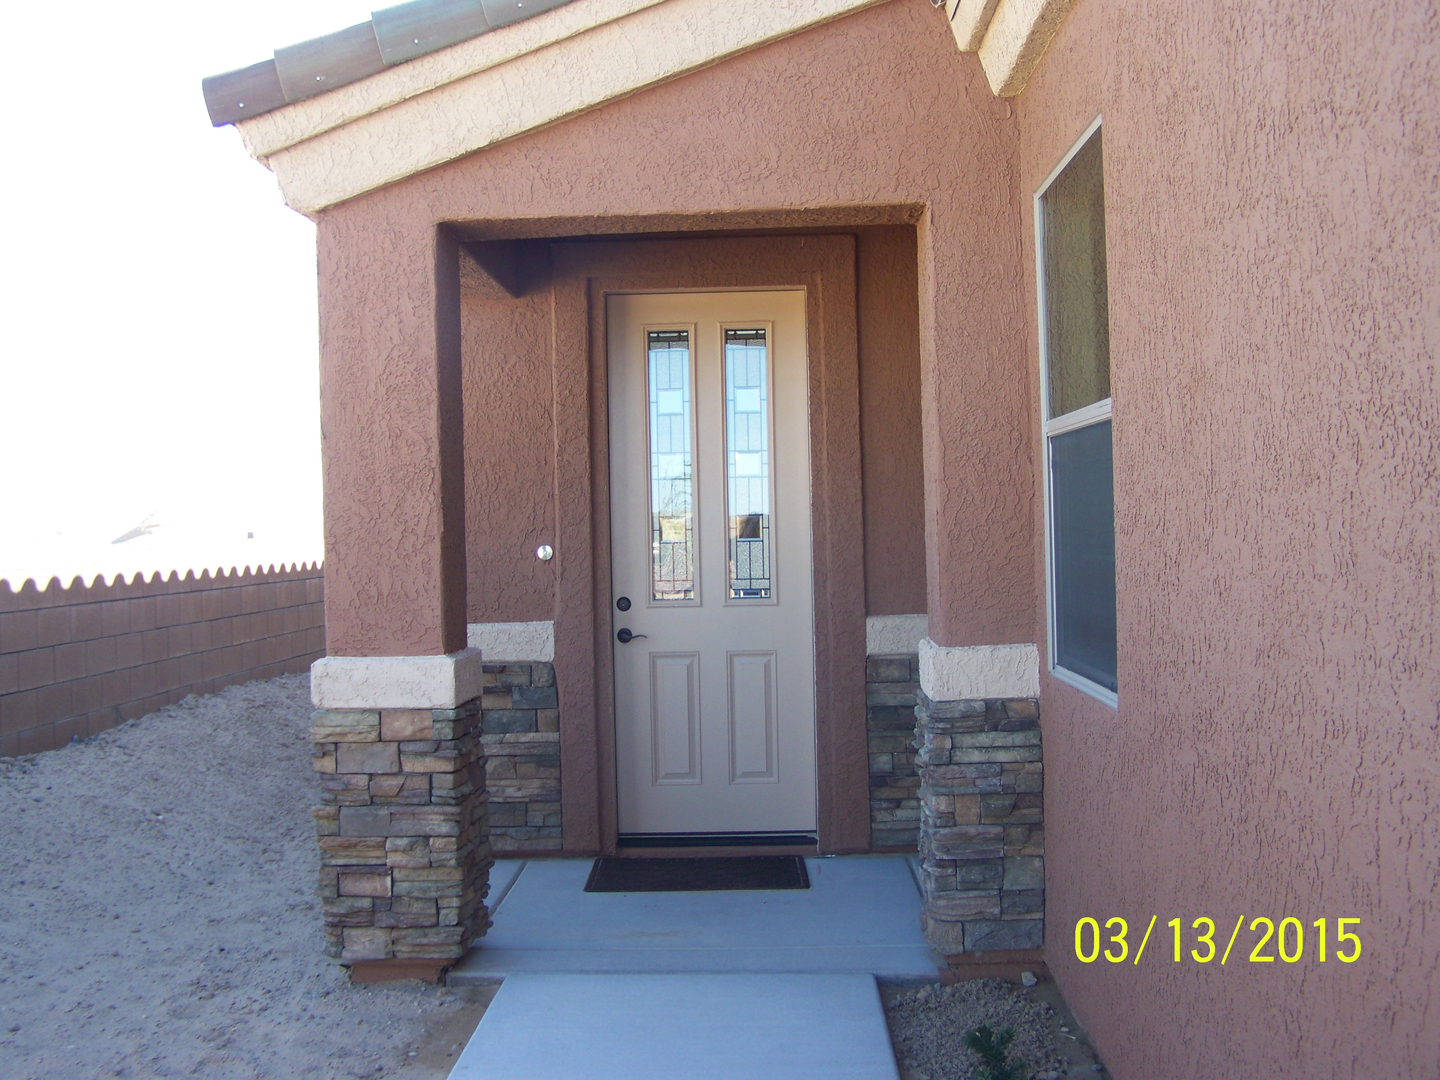 height doublewide home salome garage fully country bath is homes mobile two on lot well rv fenced located and has az acre private half properties bedroom detached united with